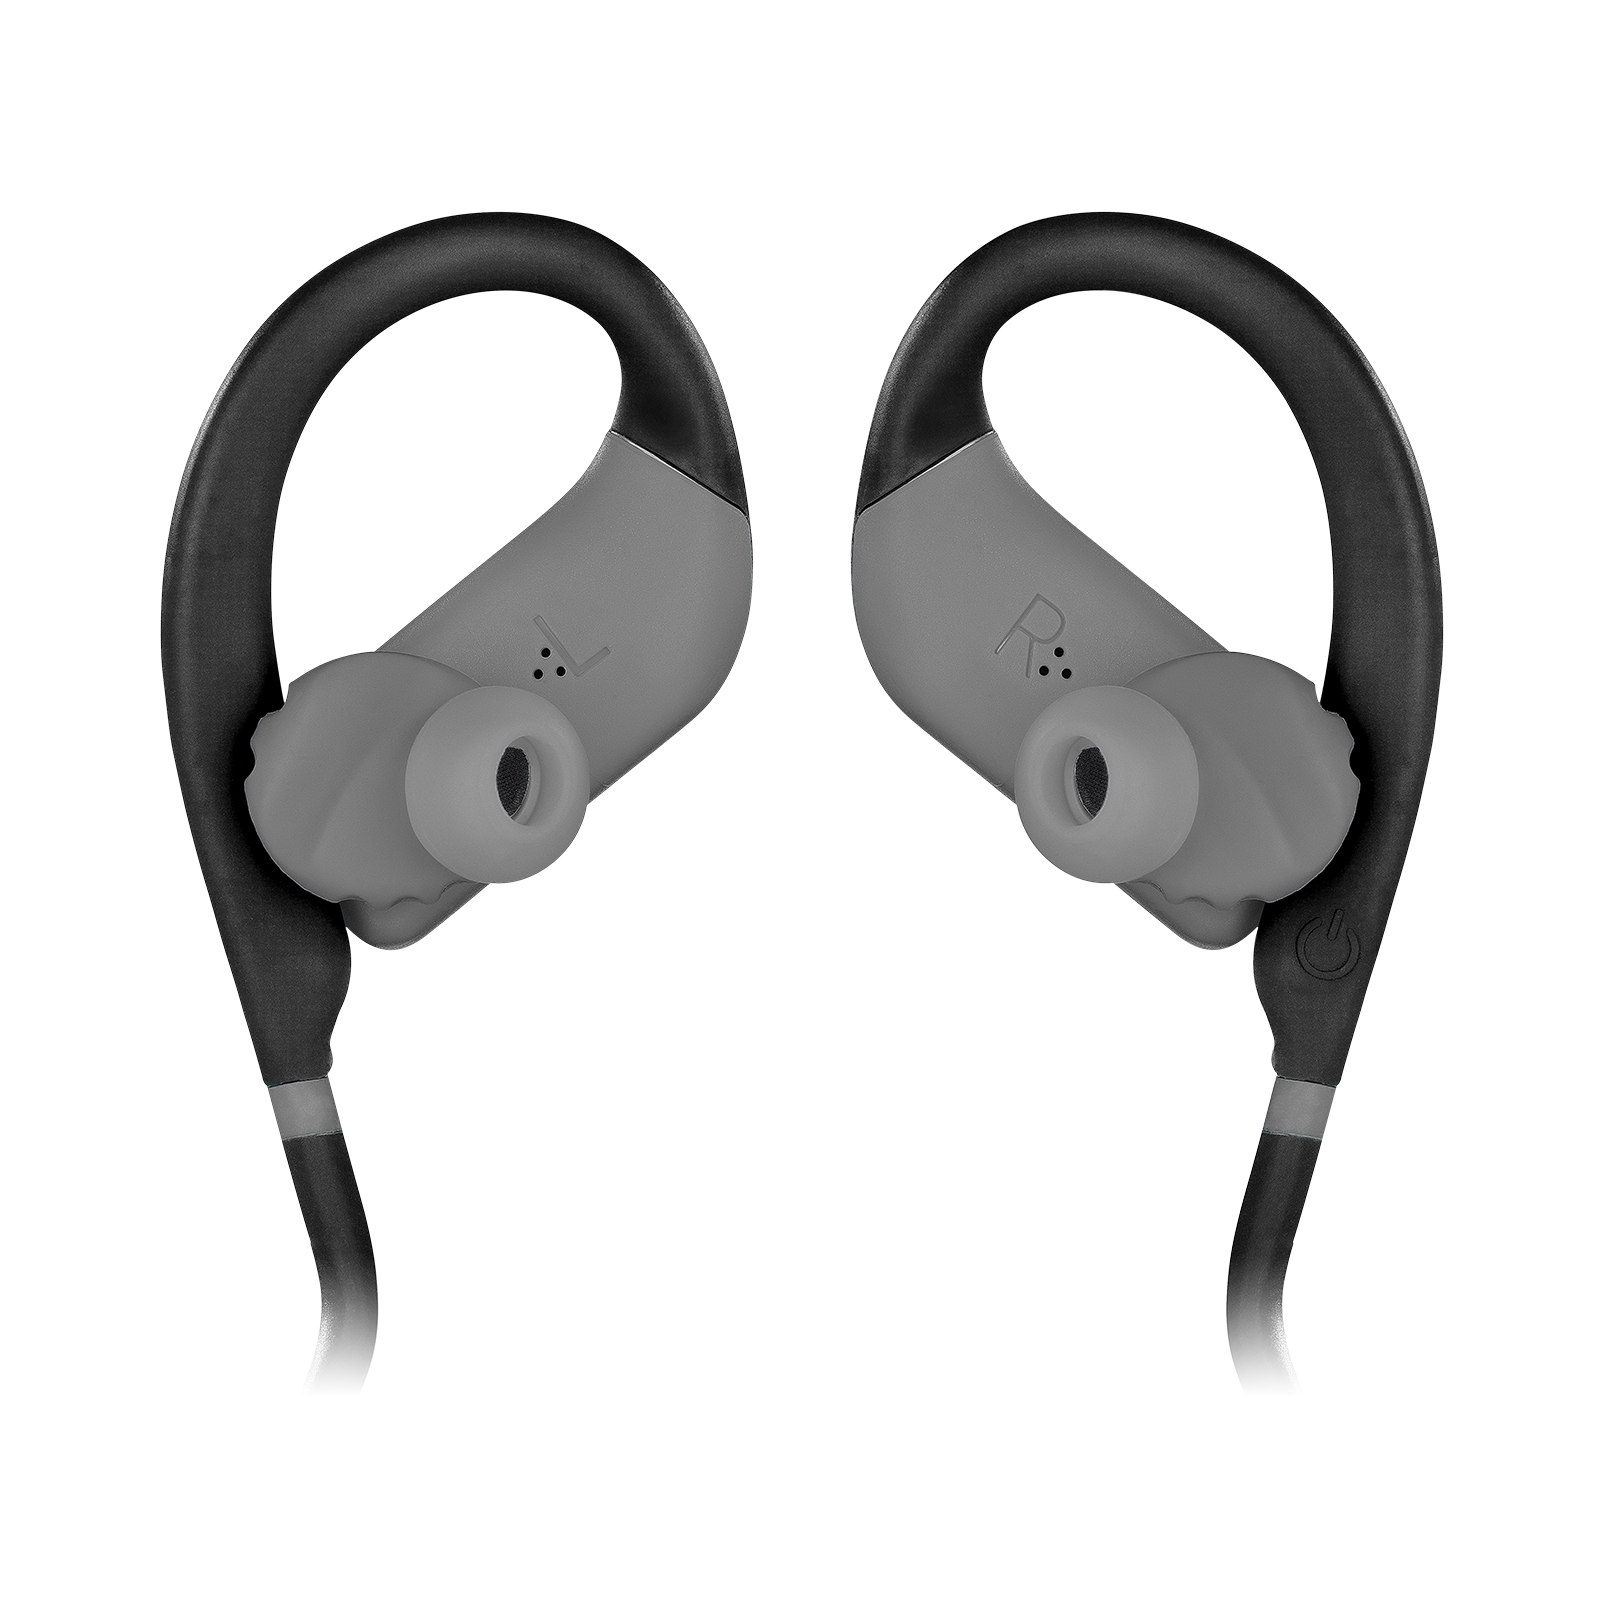 JBL Endurance DIVE - Black - Waterproof Wireless In-Ear Sport Headphones with MP3 Player - Detailshot 1